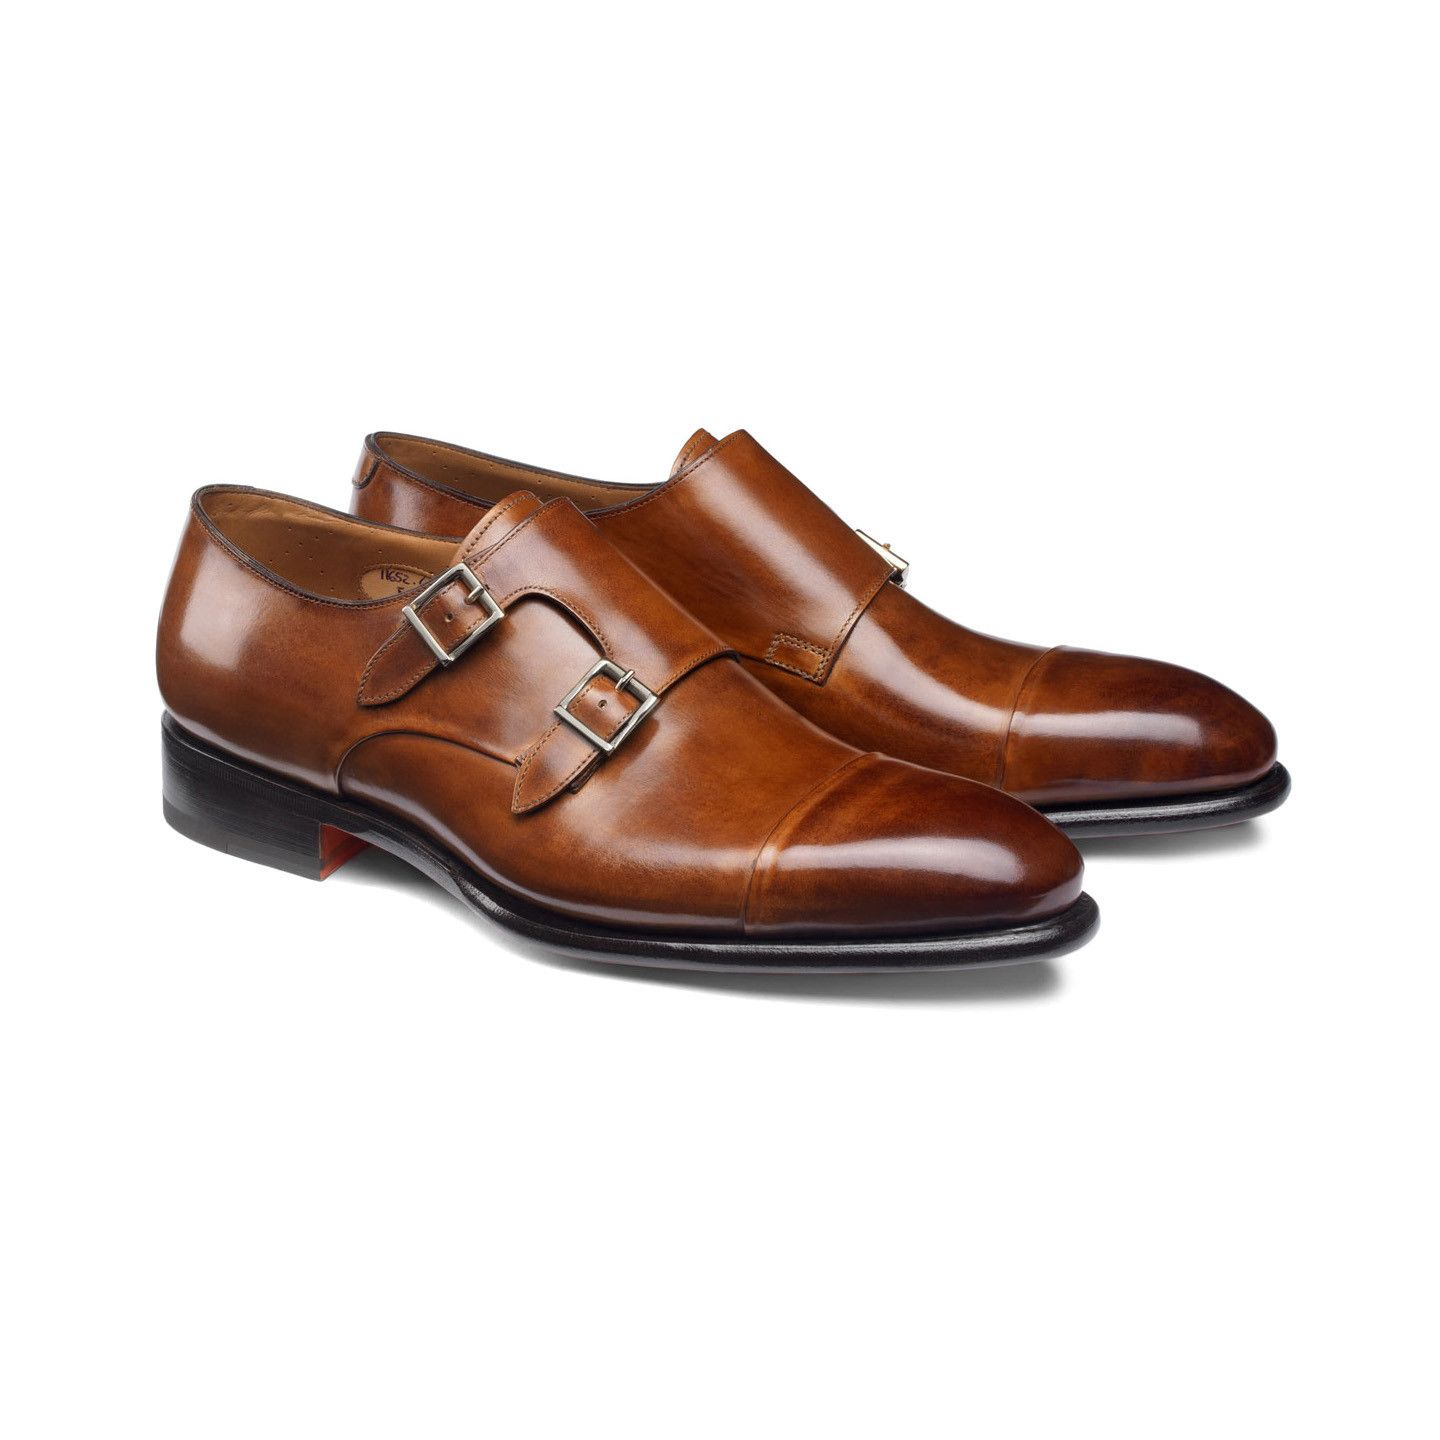 Double-buckle leather shoes, cod. 25993